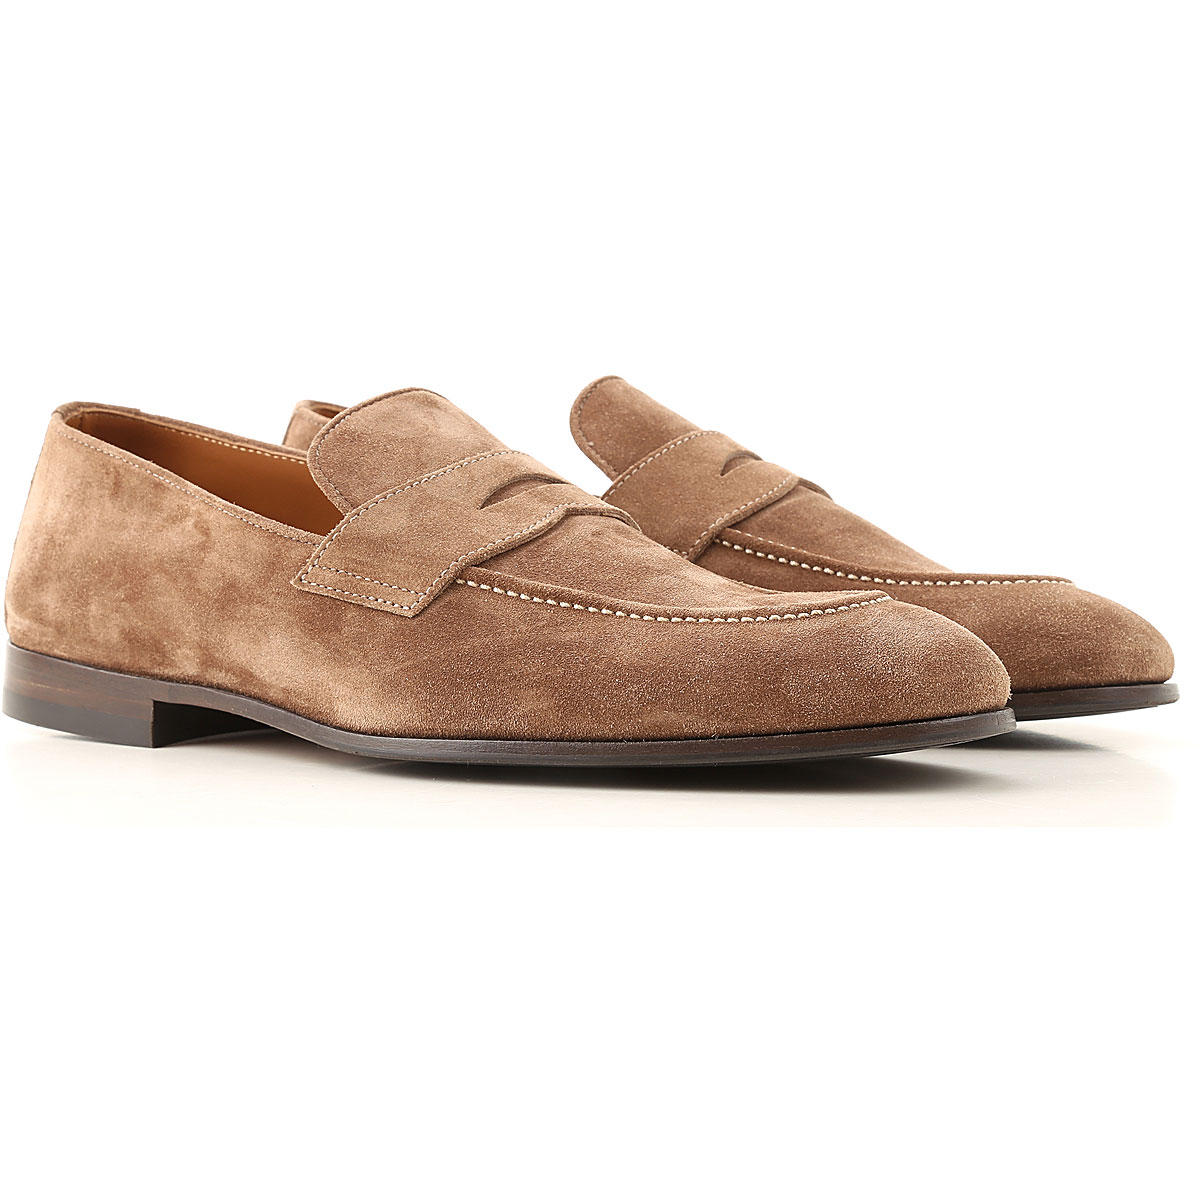 Brunello Cucinelli Loafers for Men On Sale, Mud, Suede leather, 2019, 10 7.5 8 9